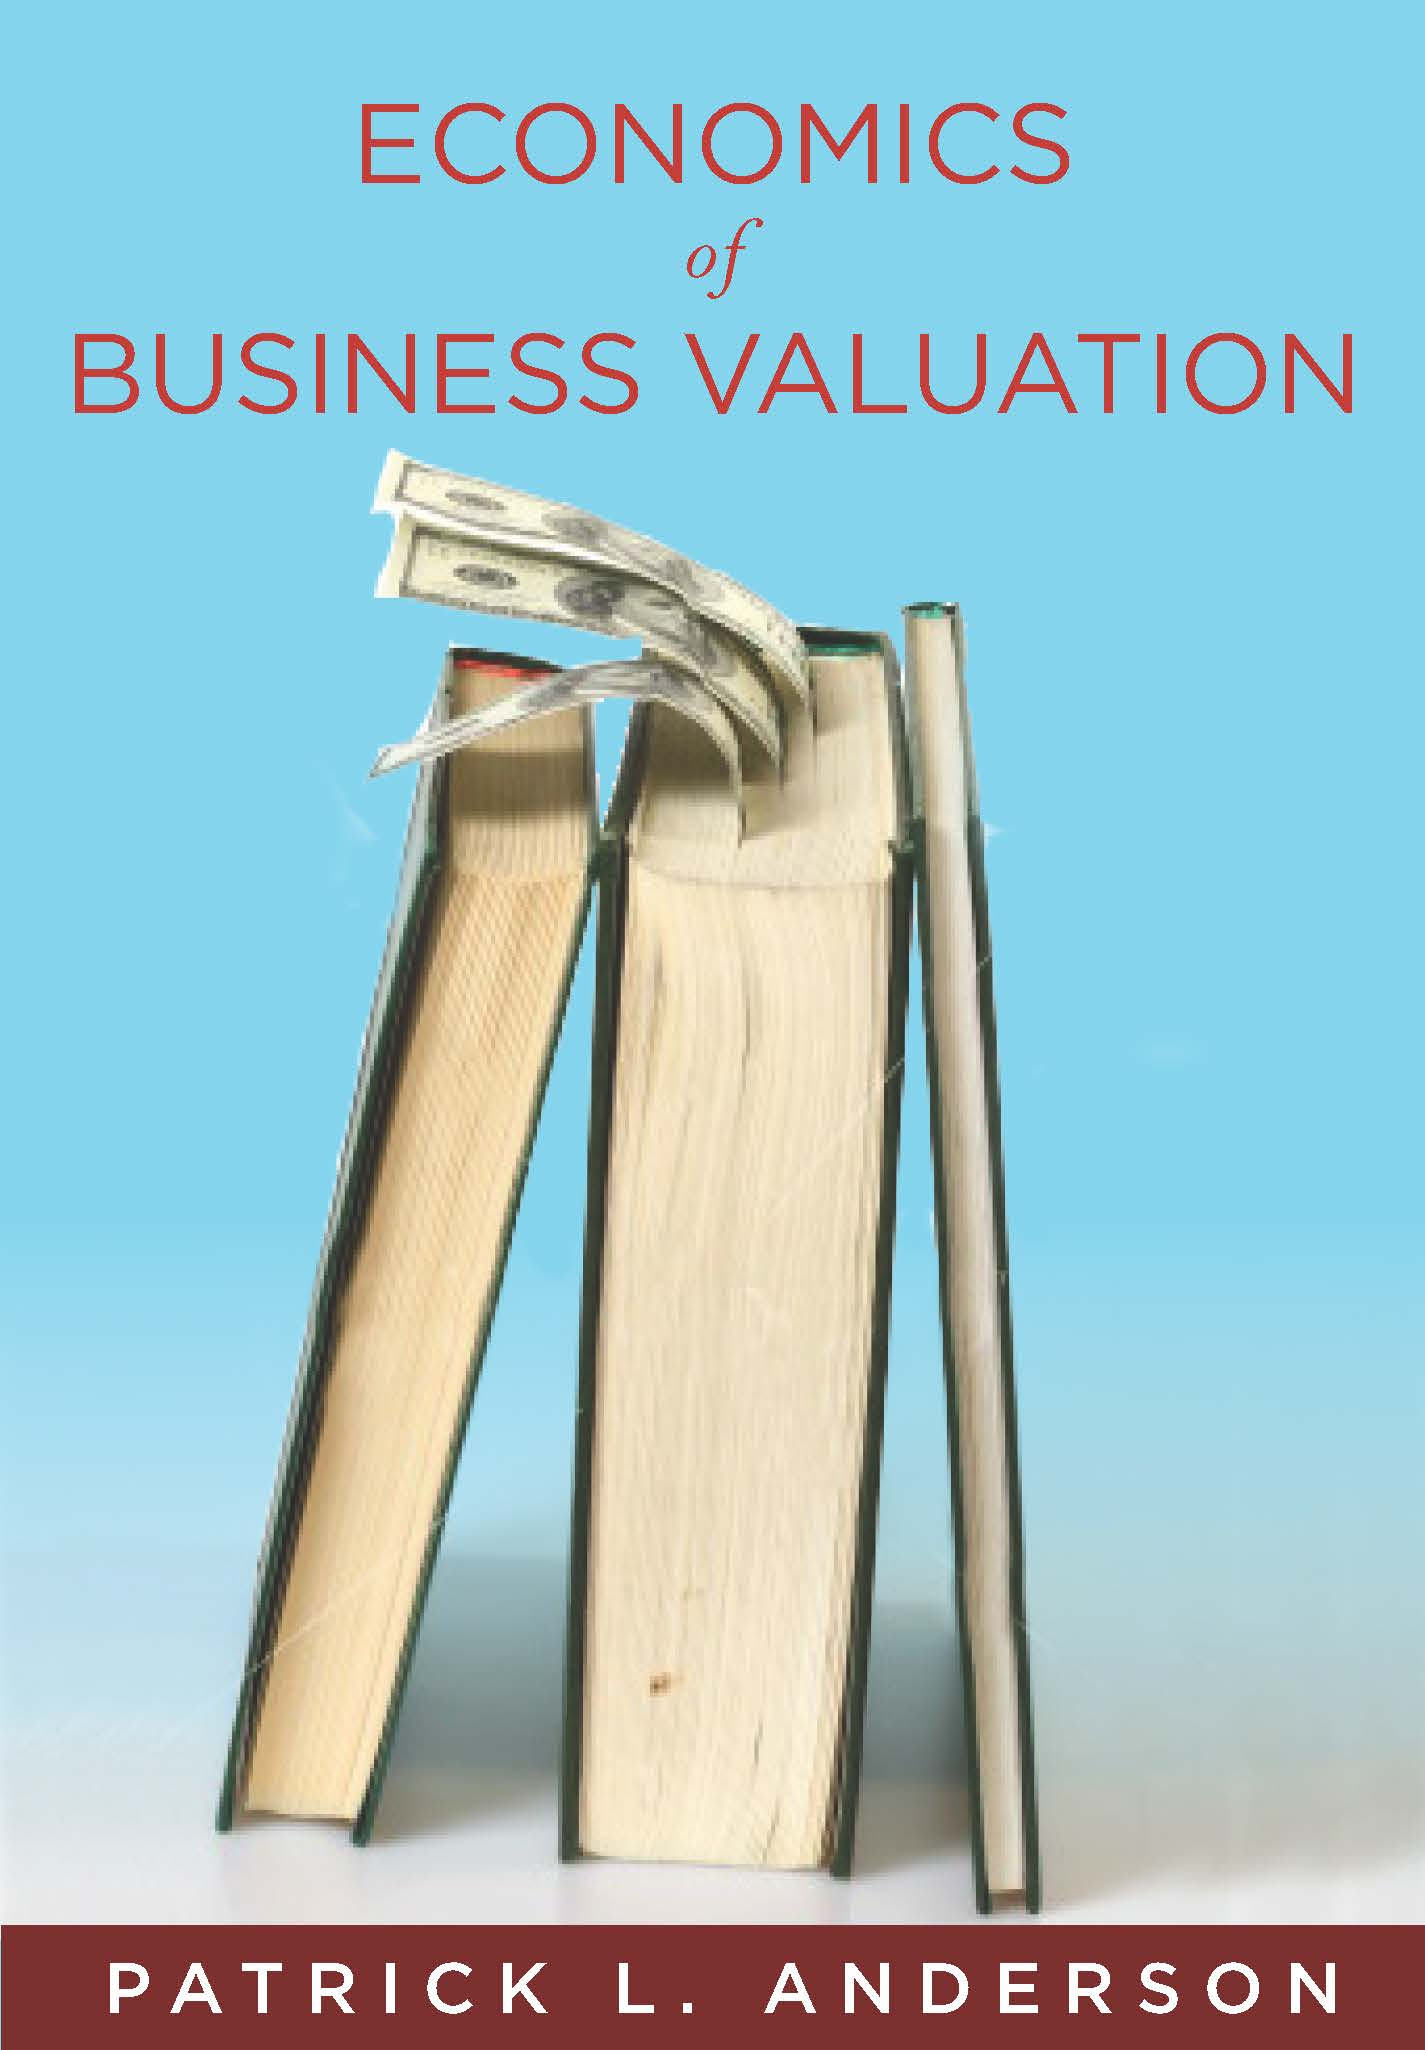 Real options examples principles valuation strategy